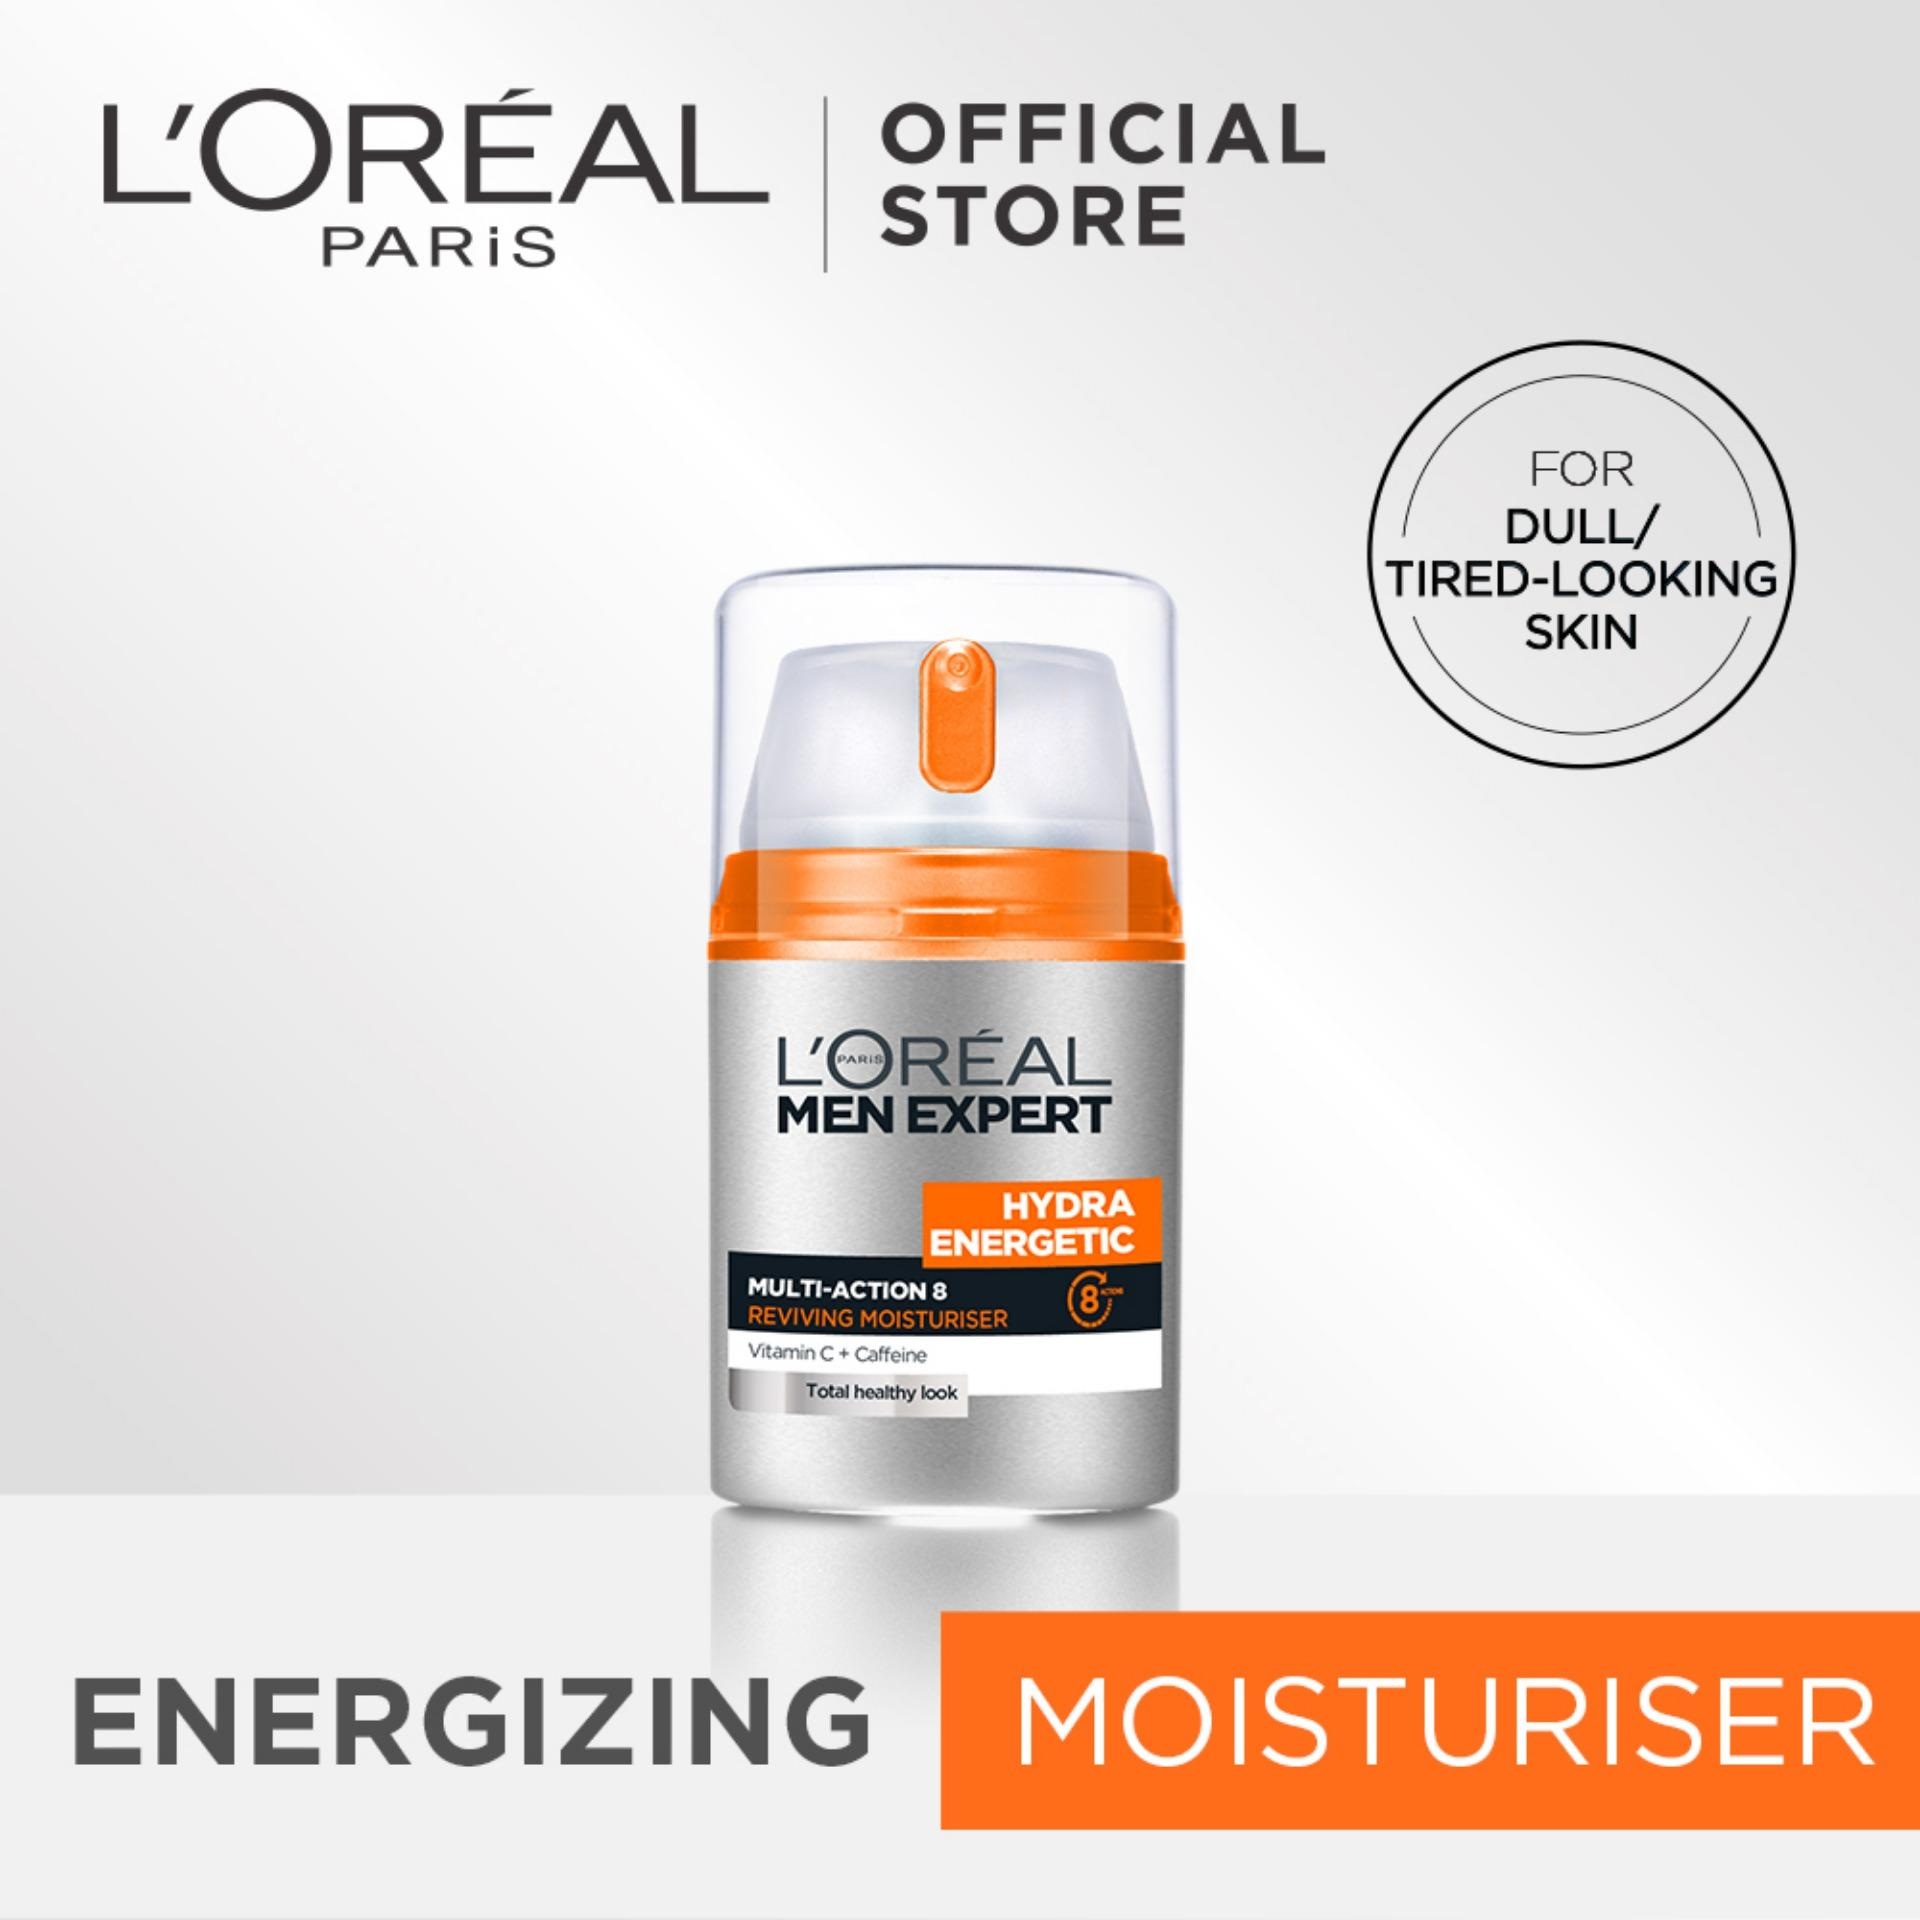 Hydra Energetic Multi-Action 8 Reviving Moisturizer 50ml By Loreal Men Expert By Loreal Paris.